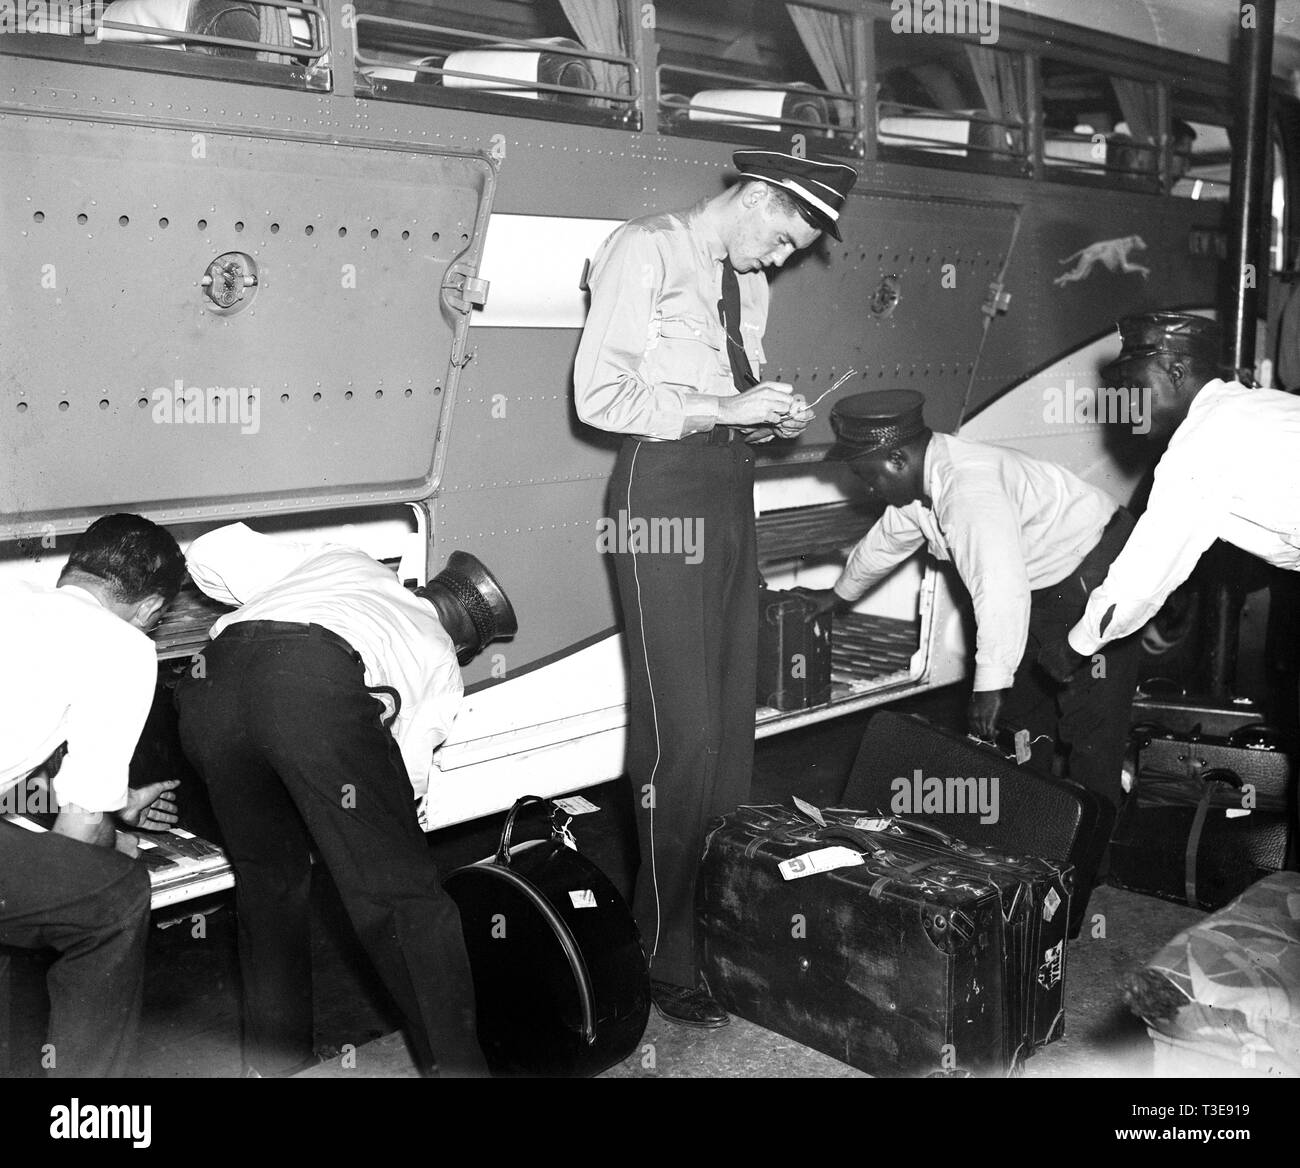 Workers At Greyhound Bus Station Loading And Checking Baggage Ca 1937 Stock Photo Alamy